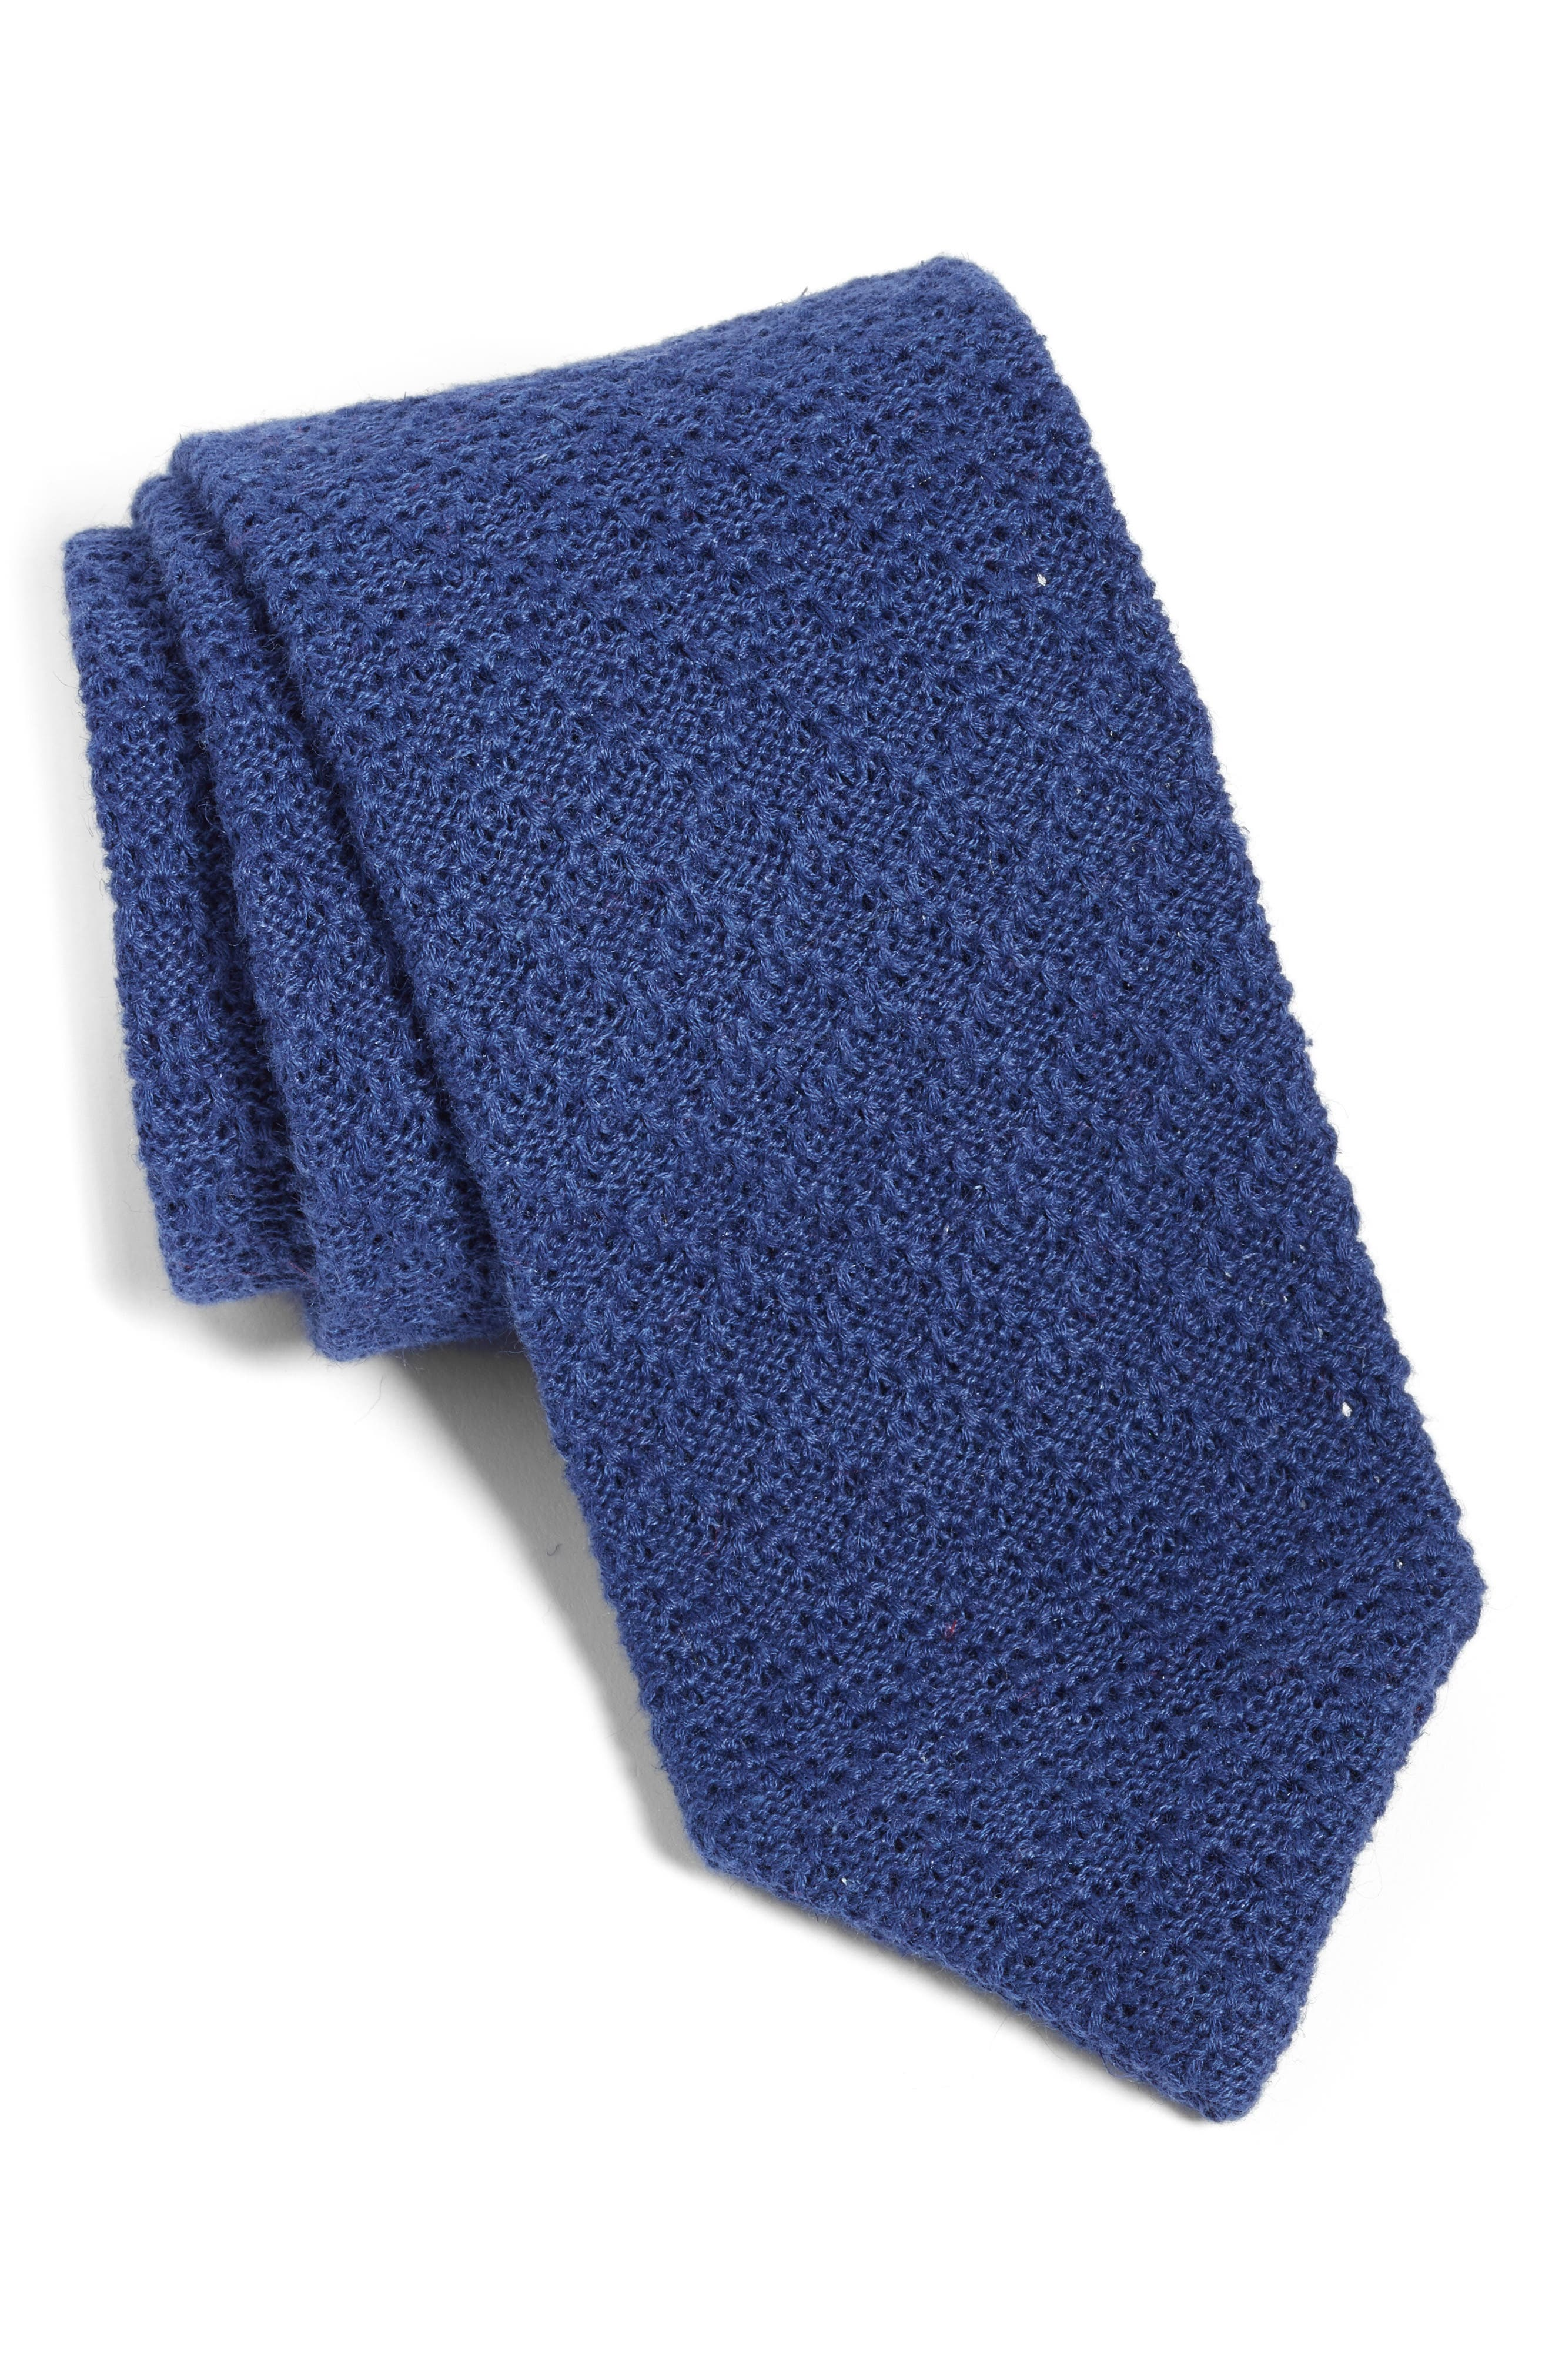 Knit Linen & Cotton Tie,                             Main thumbnail 1, color,                             NAVY